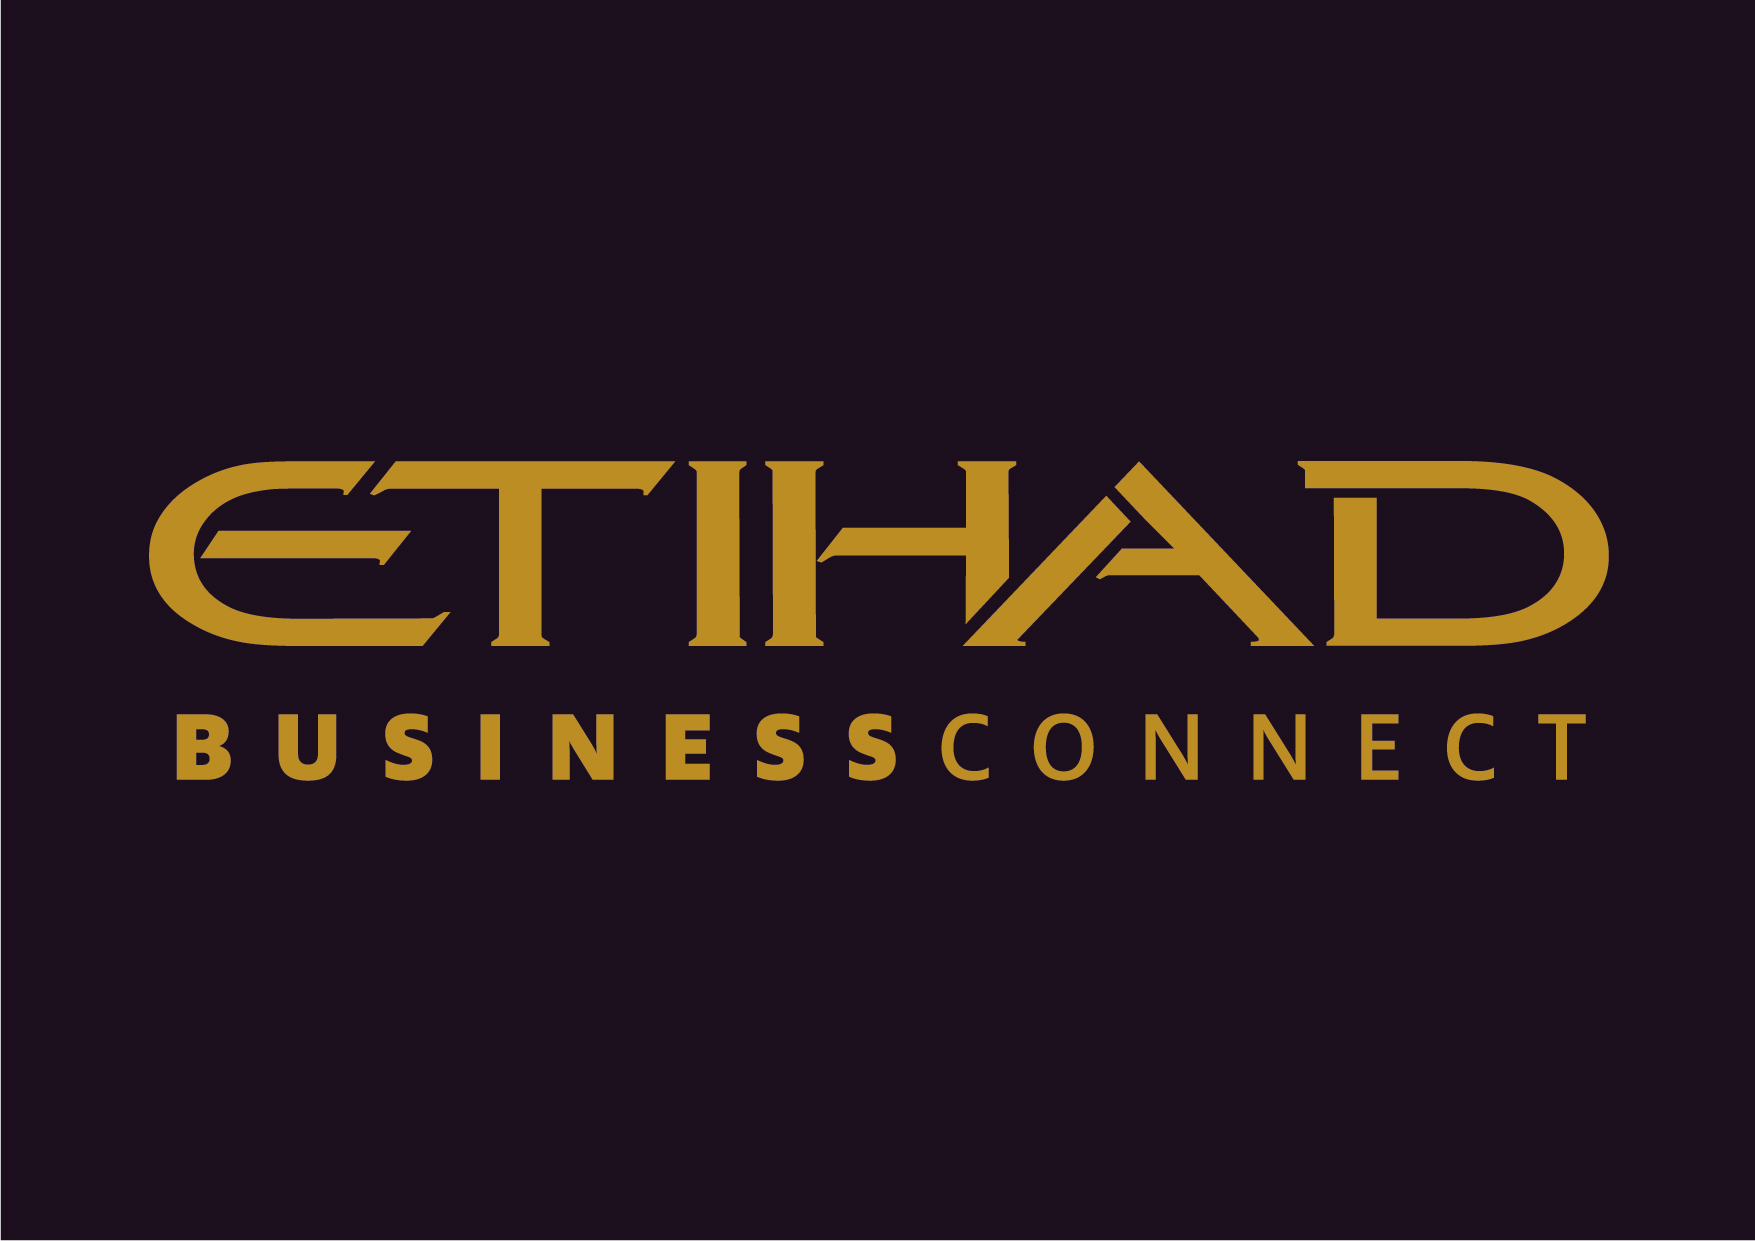 Business_Connect_Logo-02